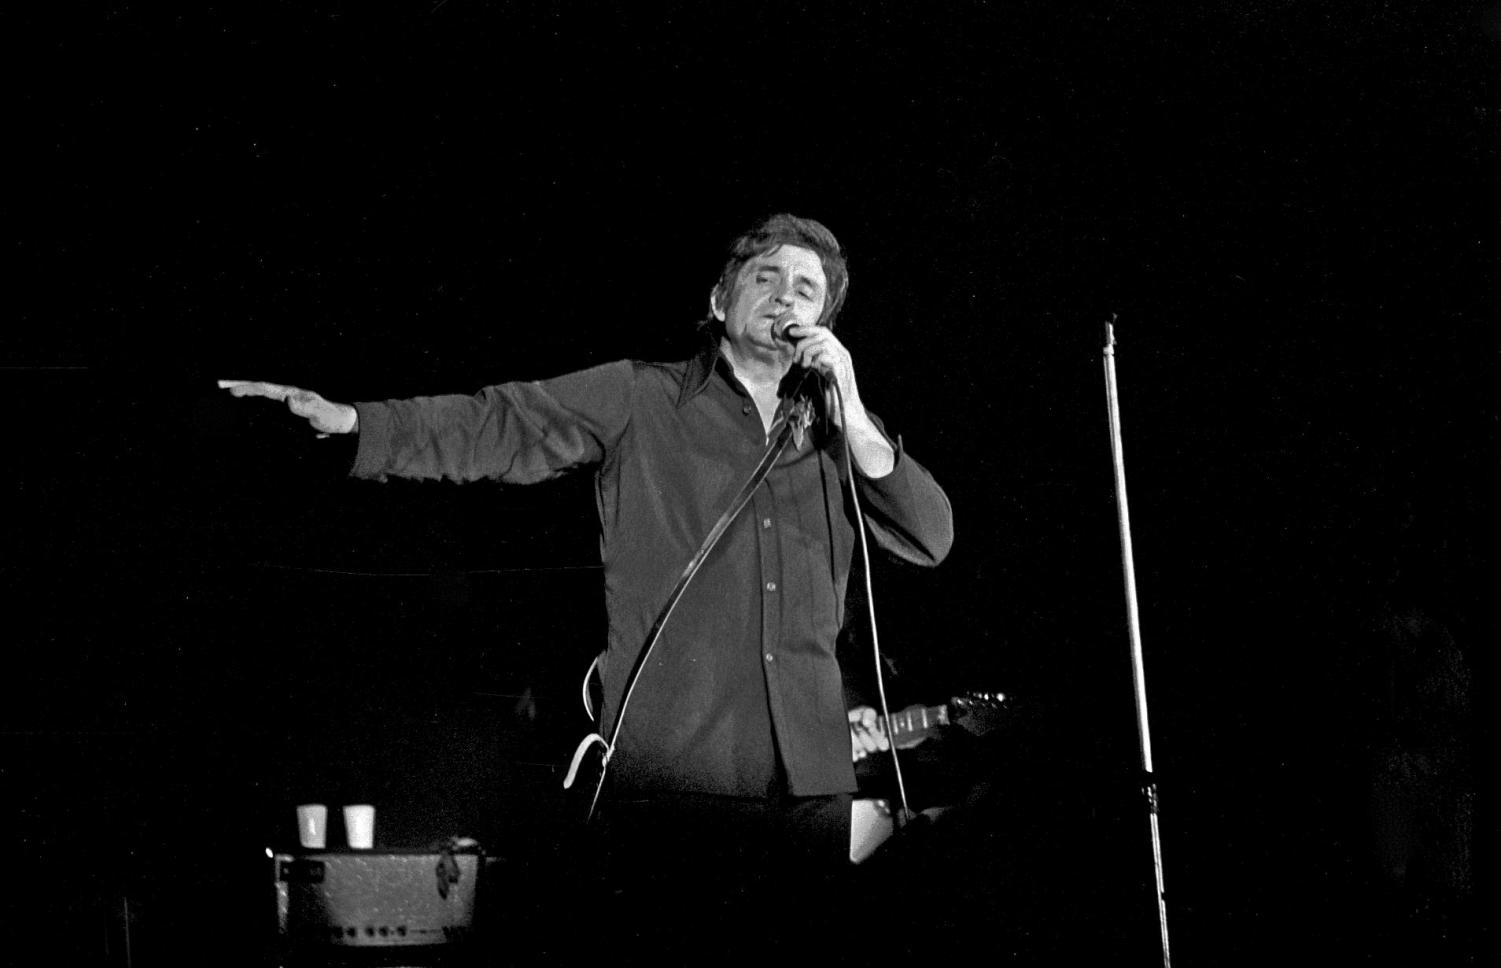 Performing Ring of Fire, Johnny Cash sings at the concert years after its debut.